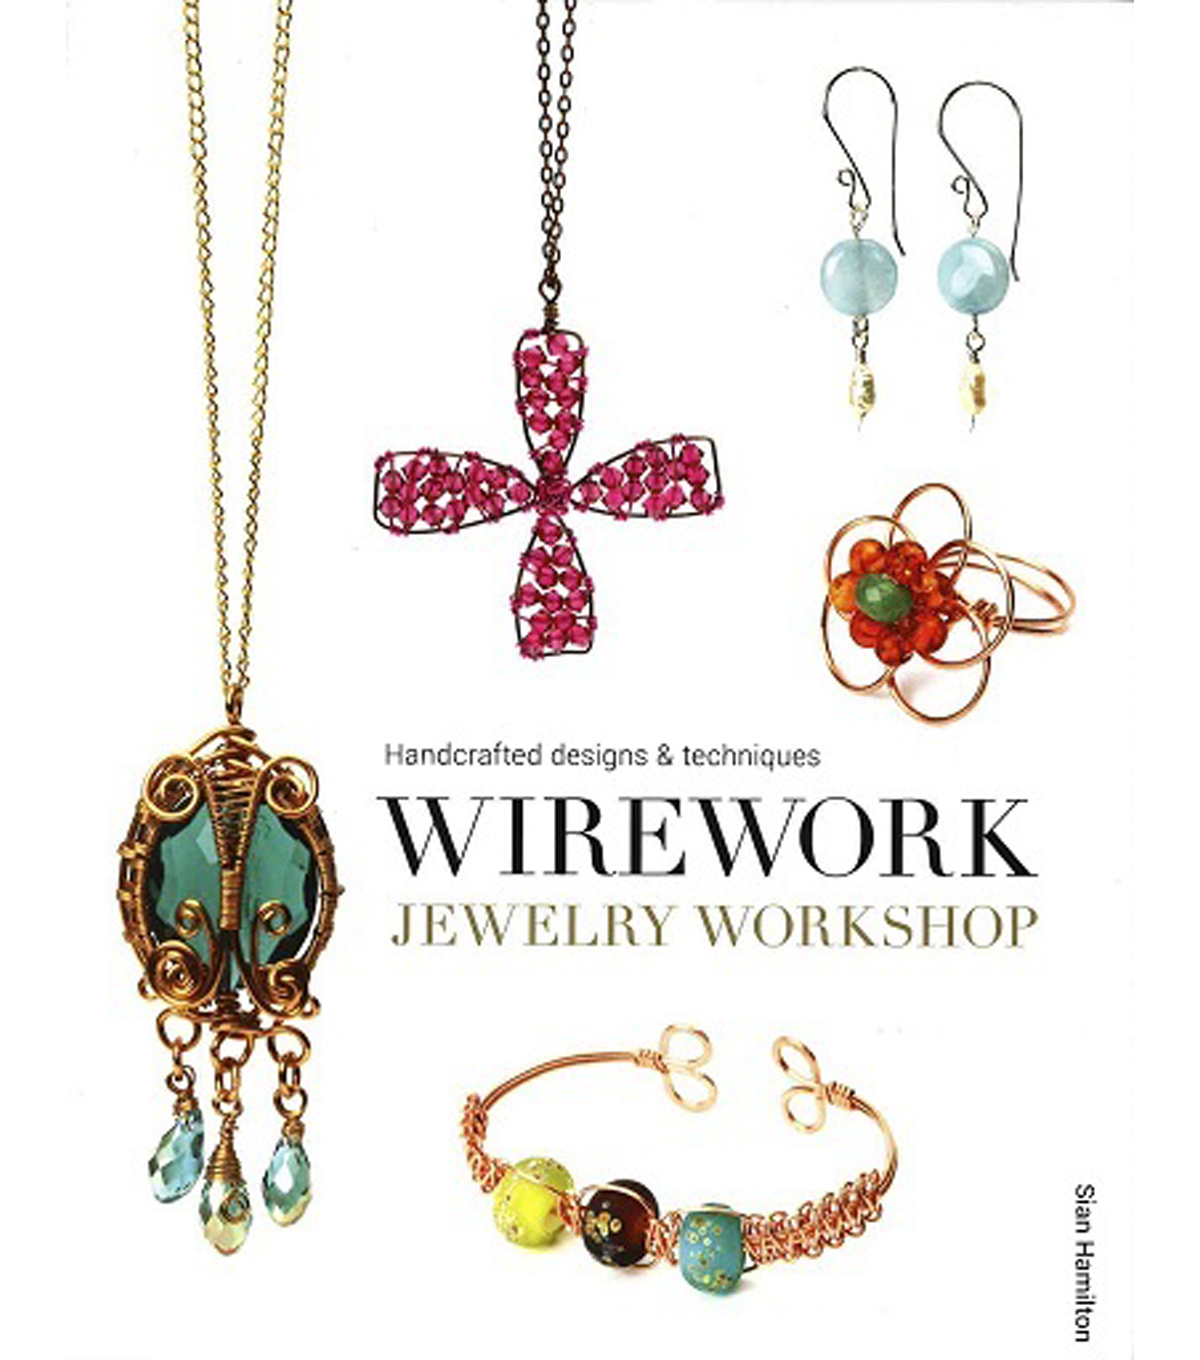 Wirework Jewelry Workshop: Handcrafted Designs & Techniques | JOANN